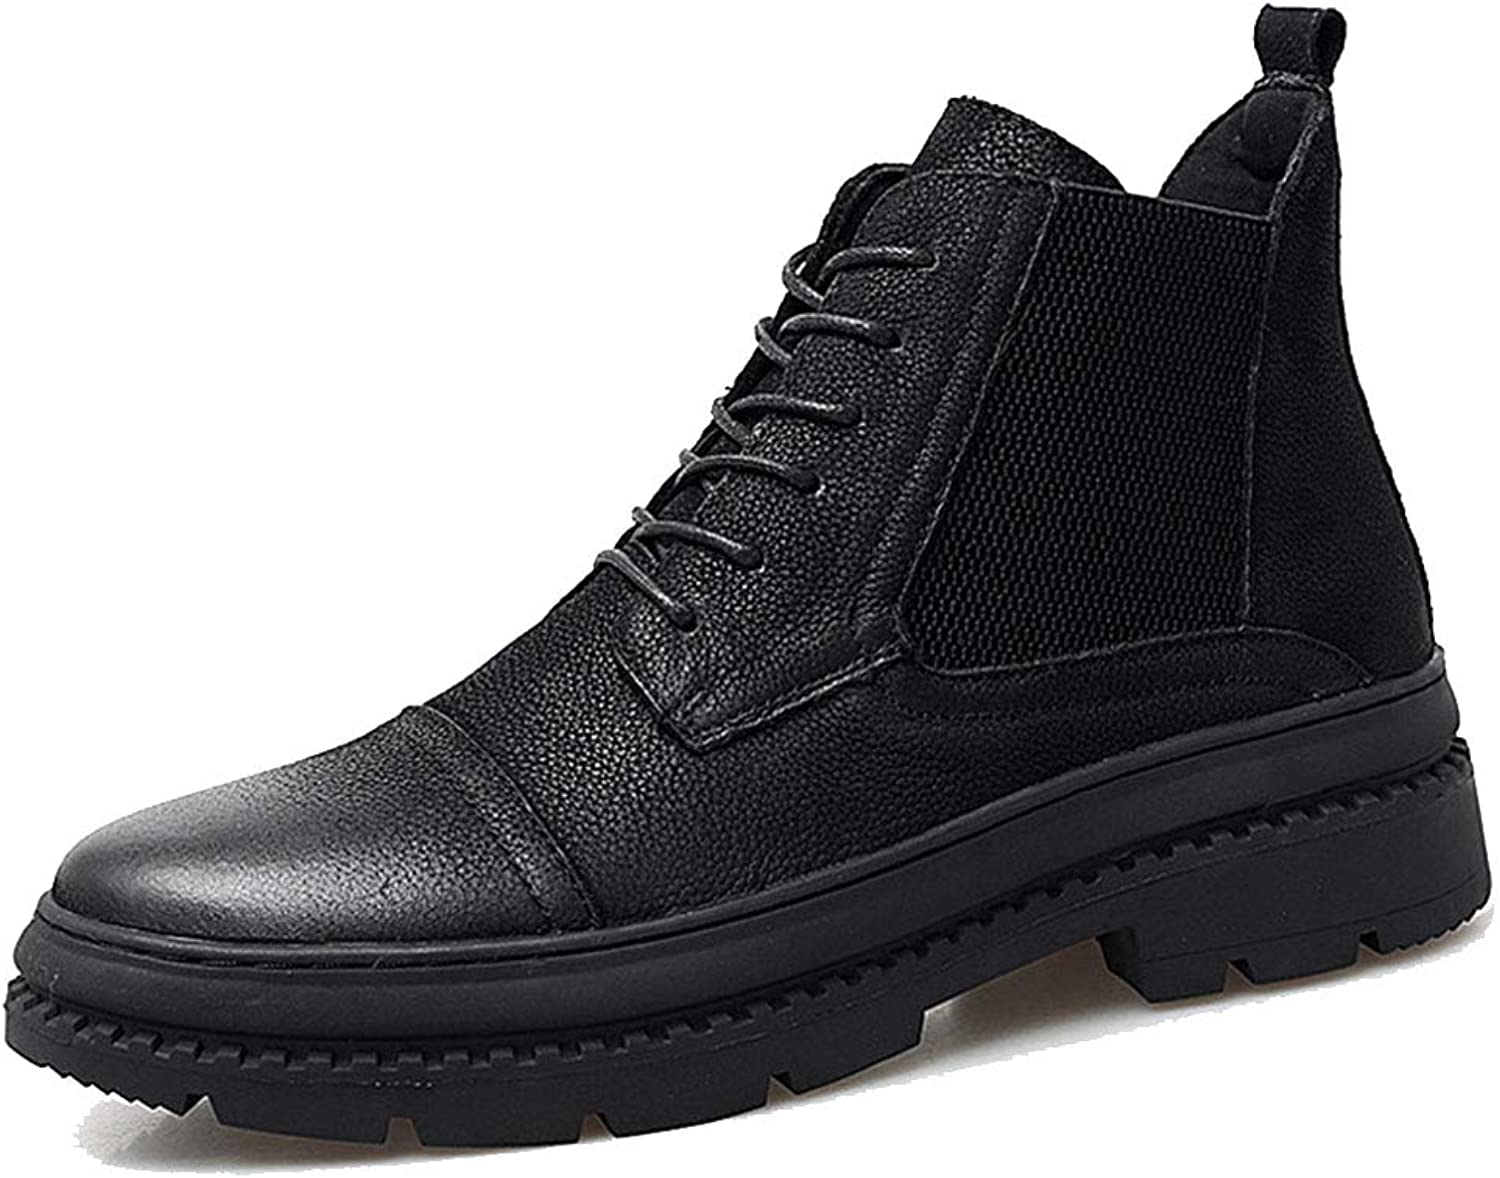 Men's Martin Boots Autumn Retro Large Size Martin Boots Fashion Casual shoes